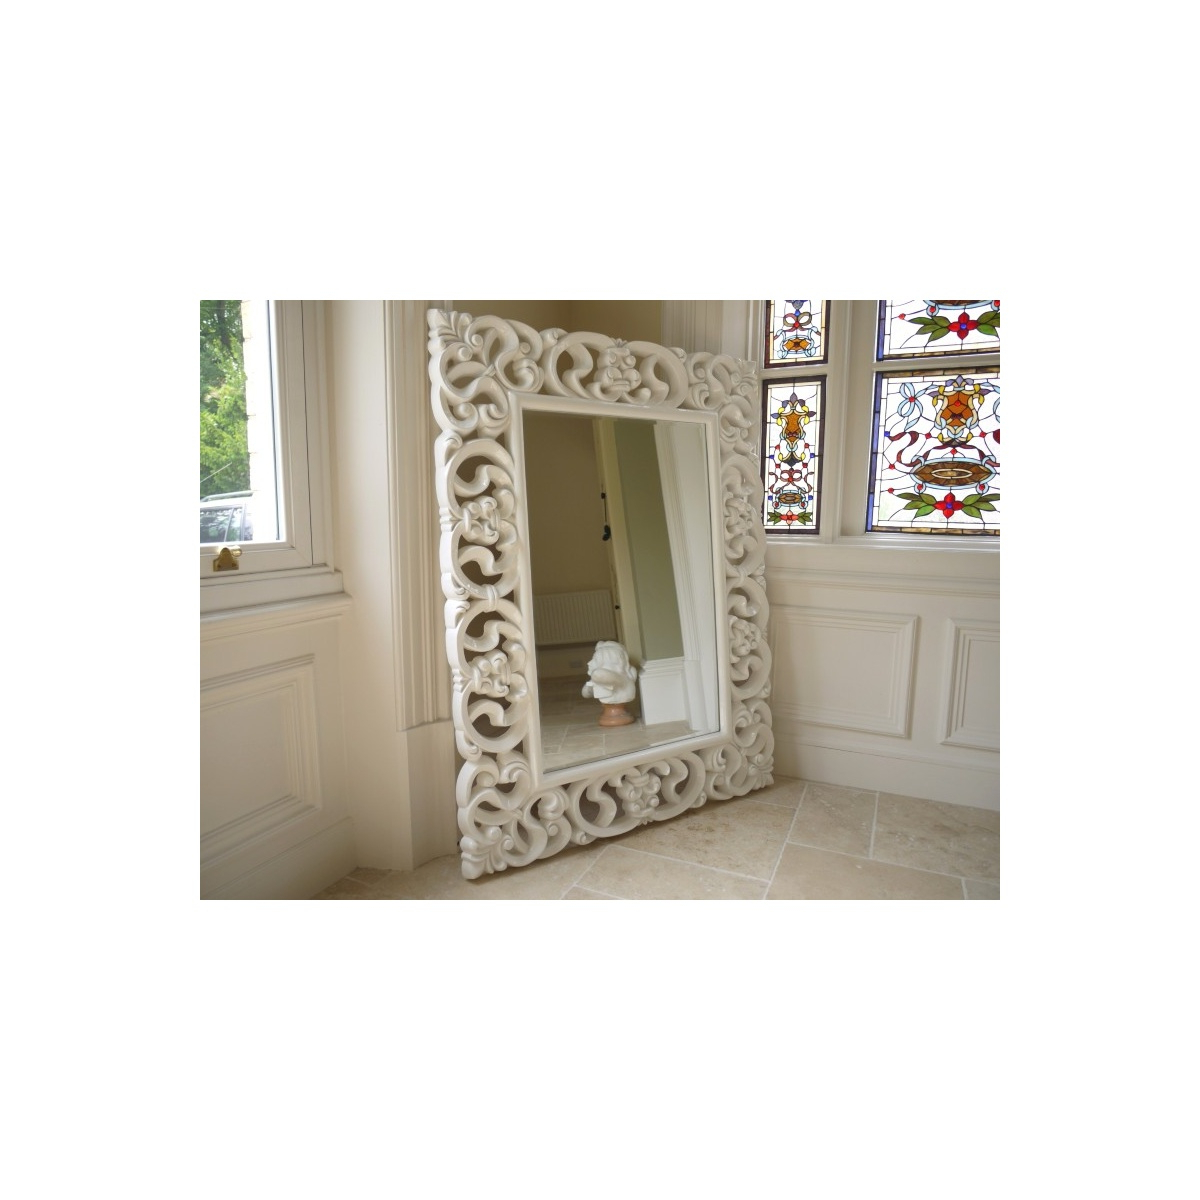 Best And Newest Large French White Ornate Wall Mirror, Gloss Throughout Large White Wall Mirrors (View 14 of 20)